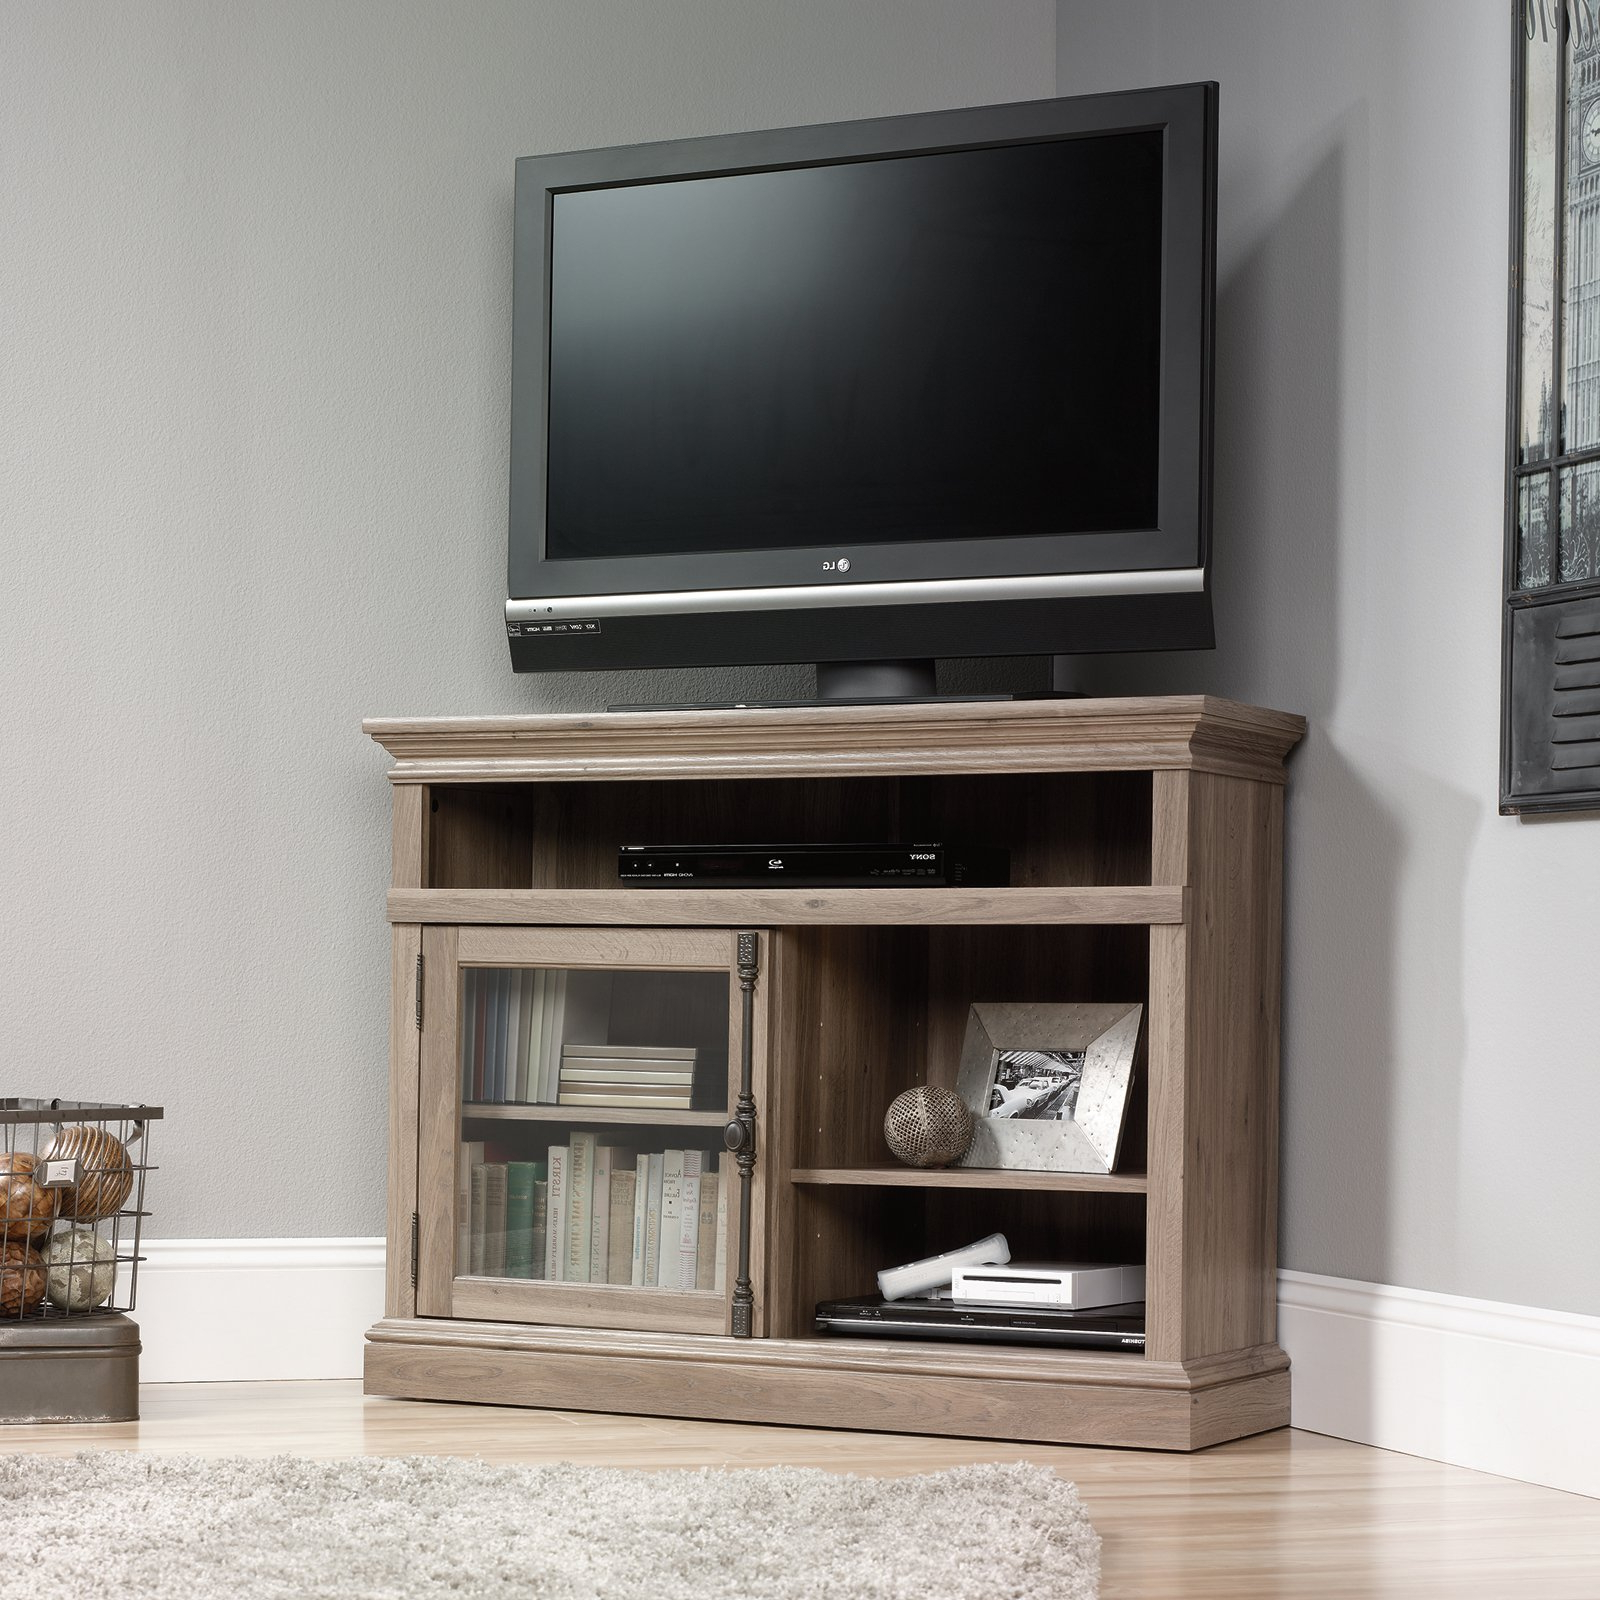 Best And Newest Small Oak Corner Tv Stands Within Tall Corner Tv Stand Amazing Sauder 42 In Barrister Lane Tv Salt Oak (View 2 of 20)